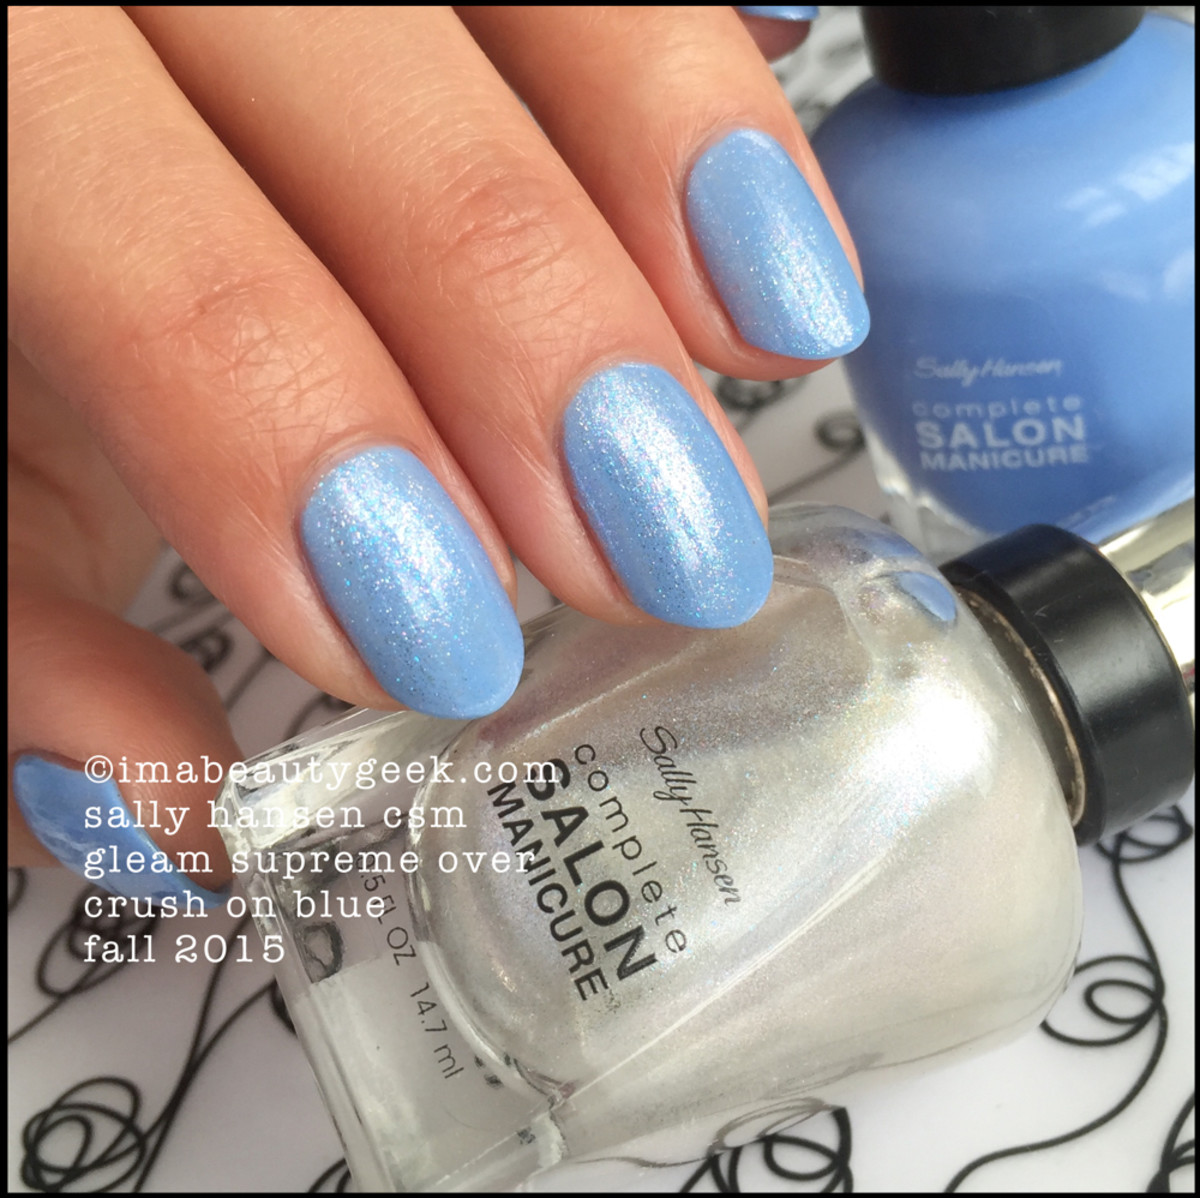 Sally Hansen Gleam Supreme over Crush on Blue CSM Fall 2015